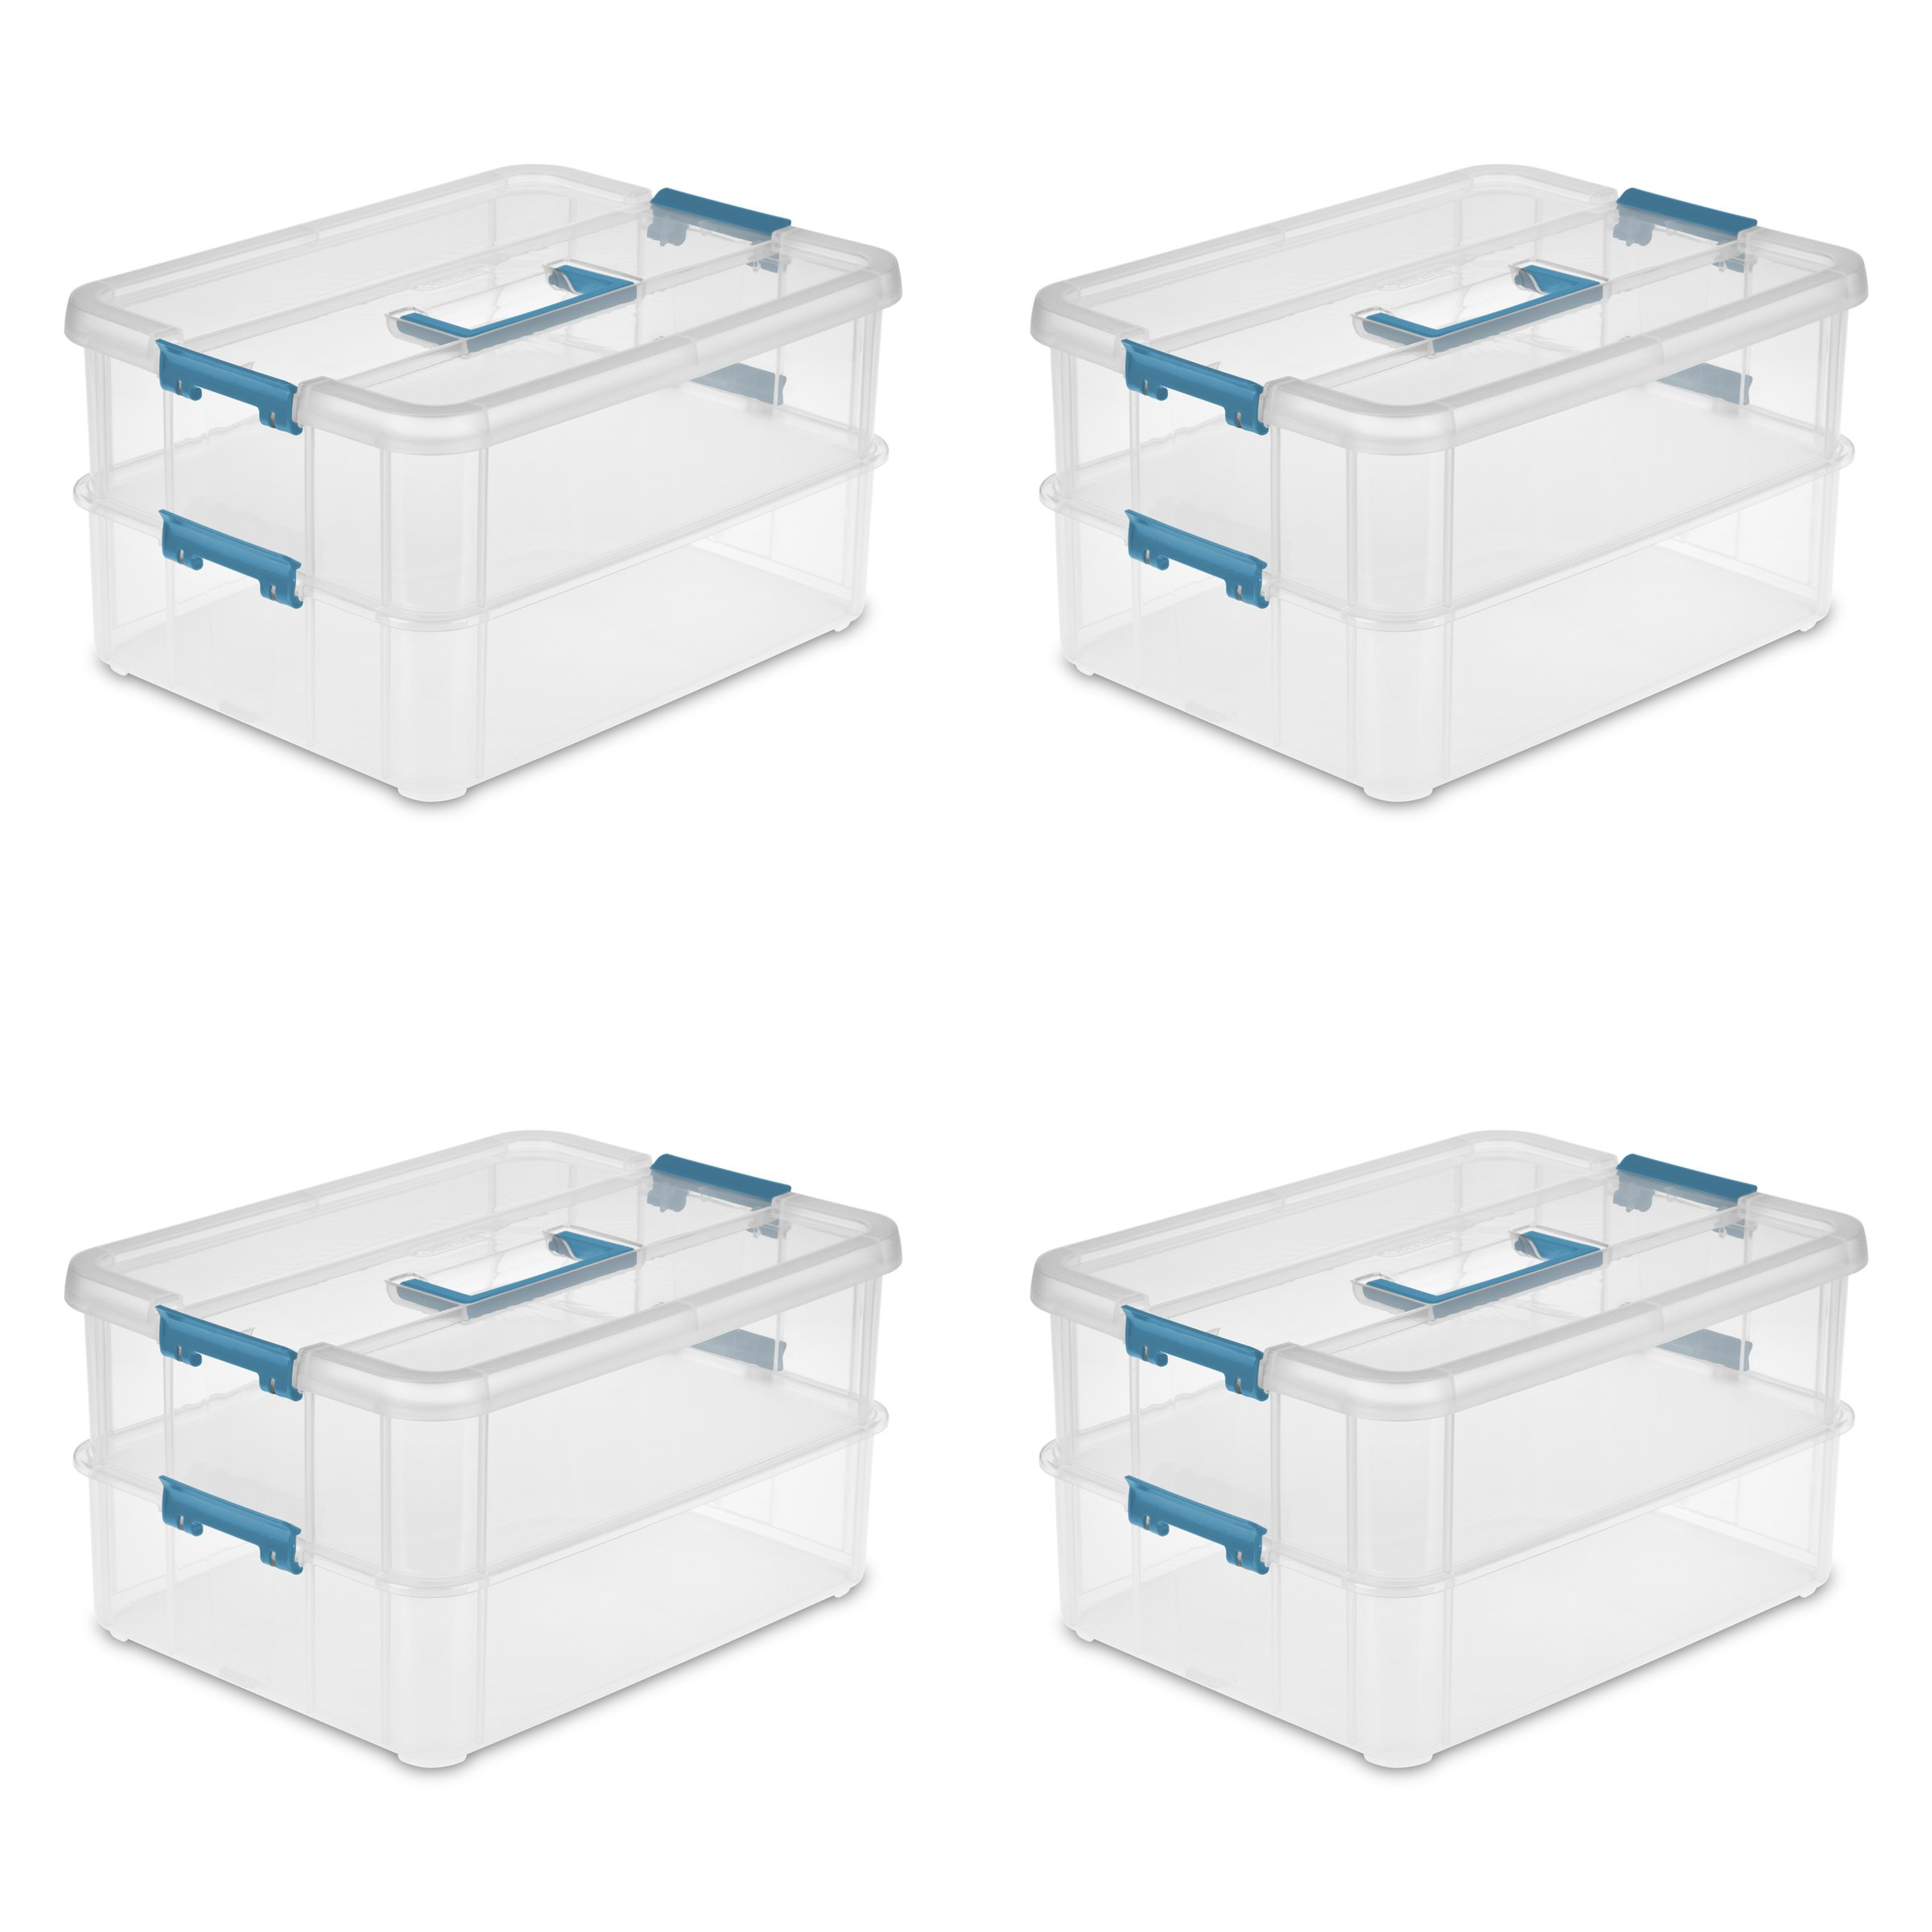 Sterilite 14228604 Stack & Carry 2 Layer Handle Box, Clear Base with Colored Handle and Latches, 4-Pack by STERILITE